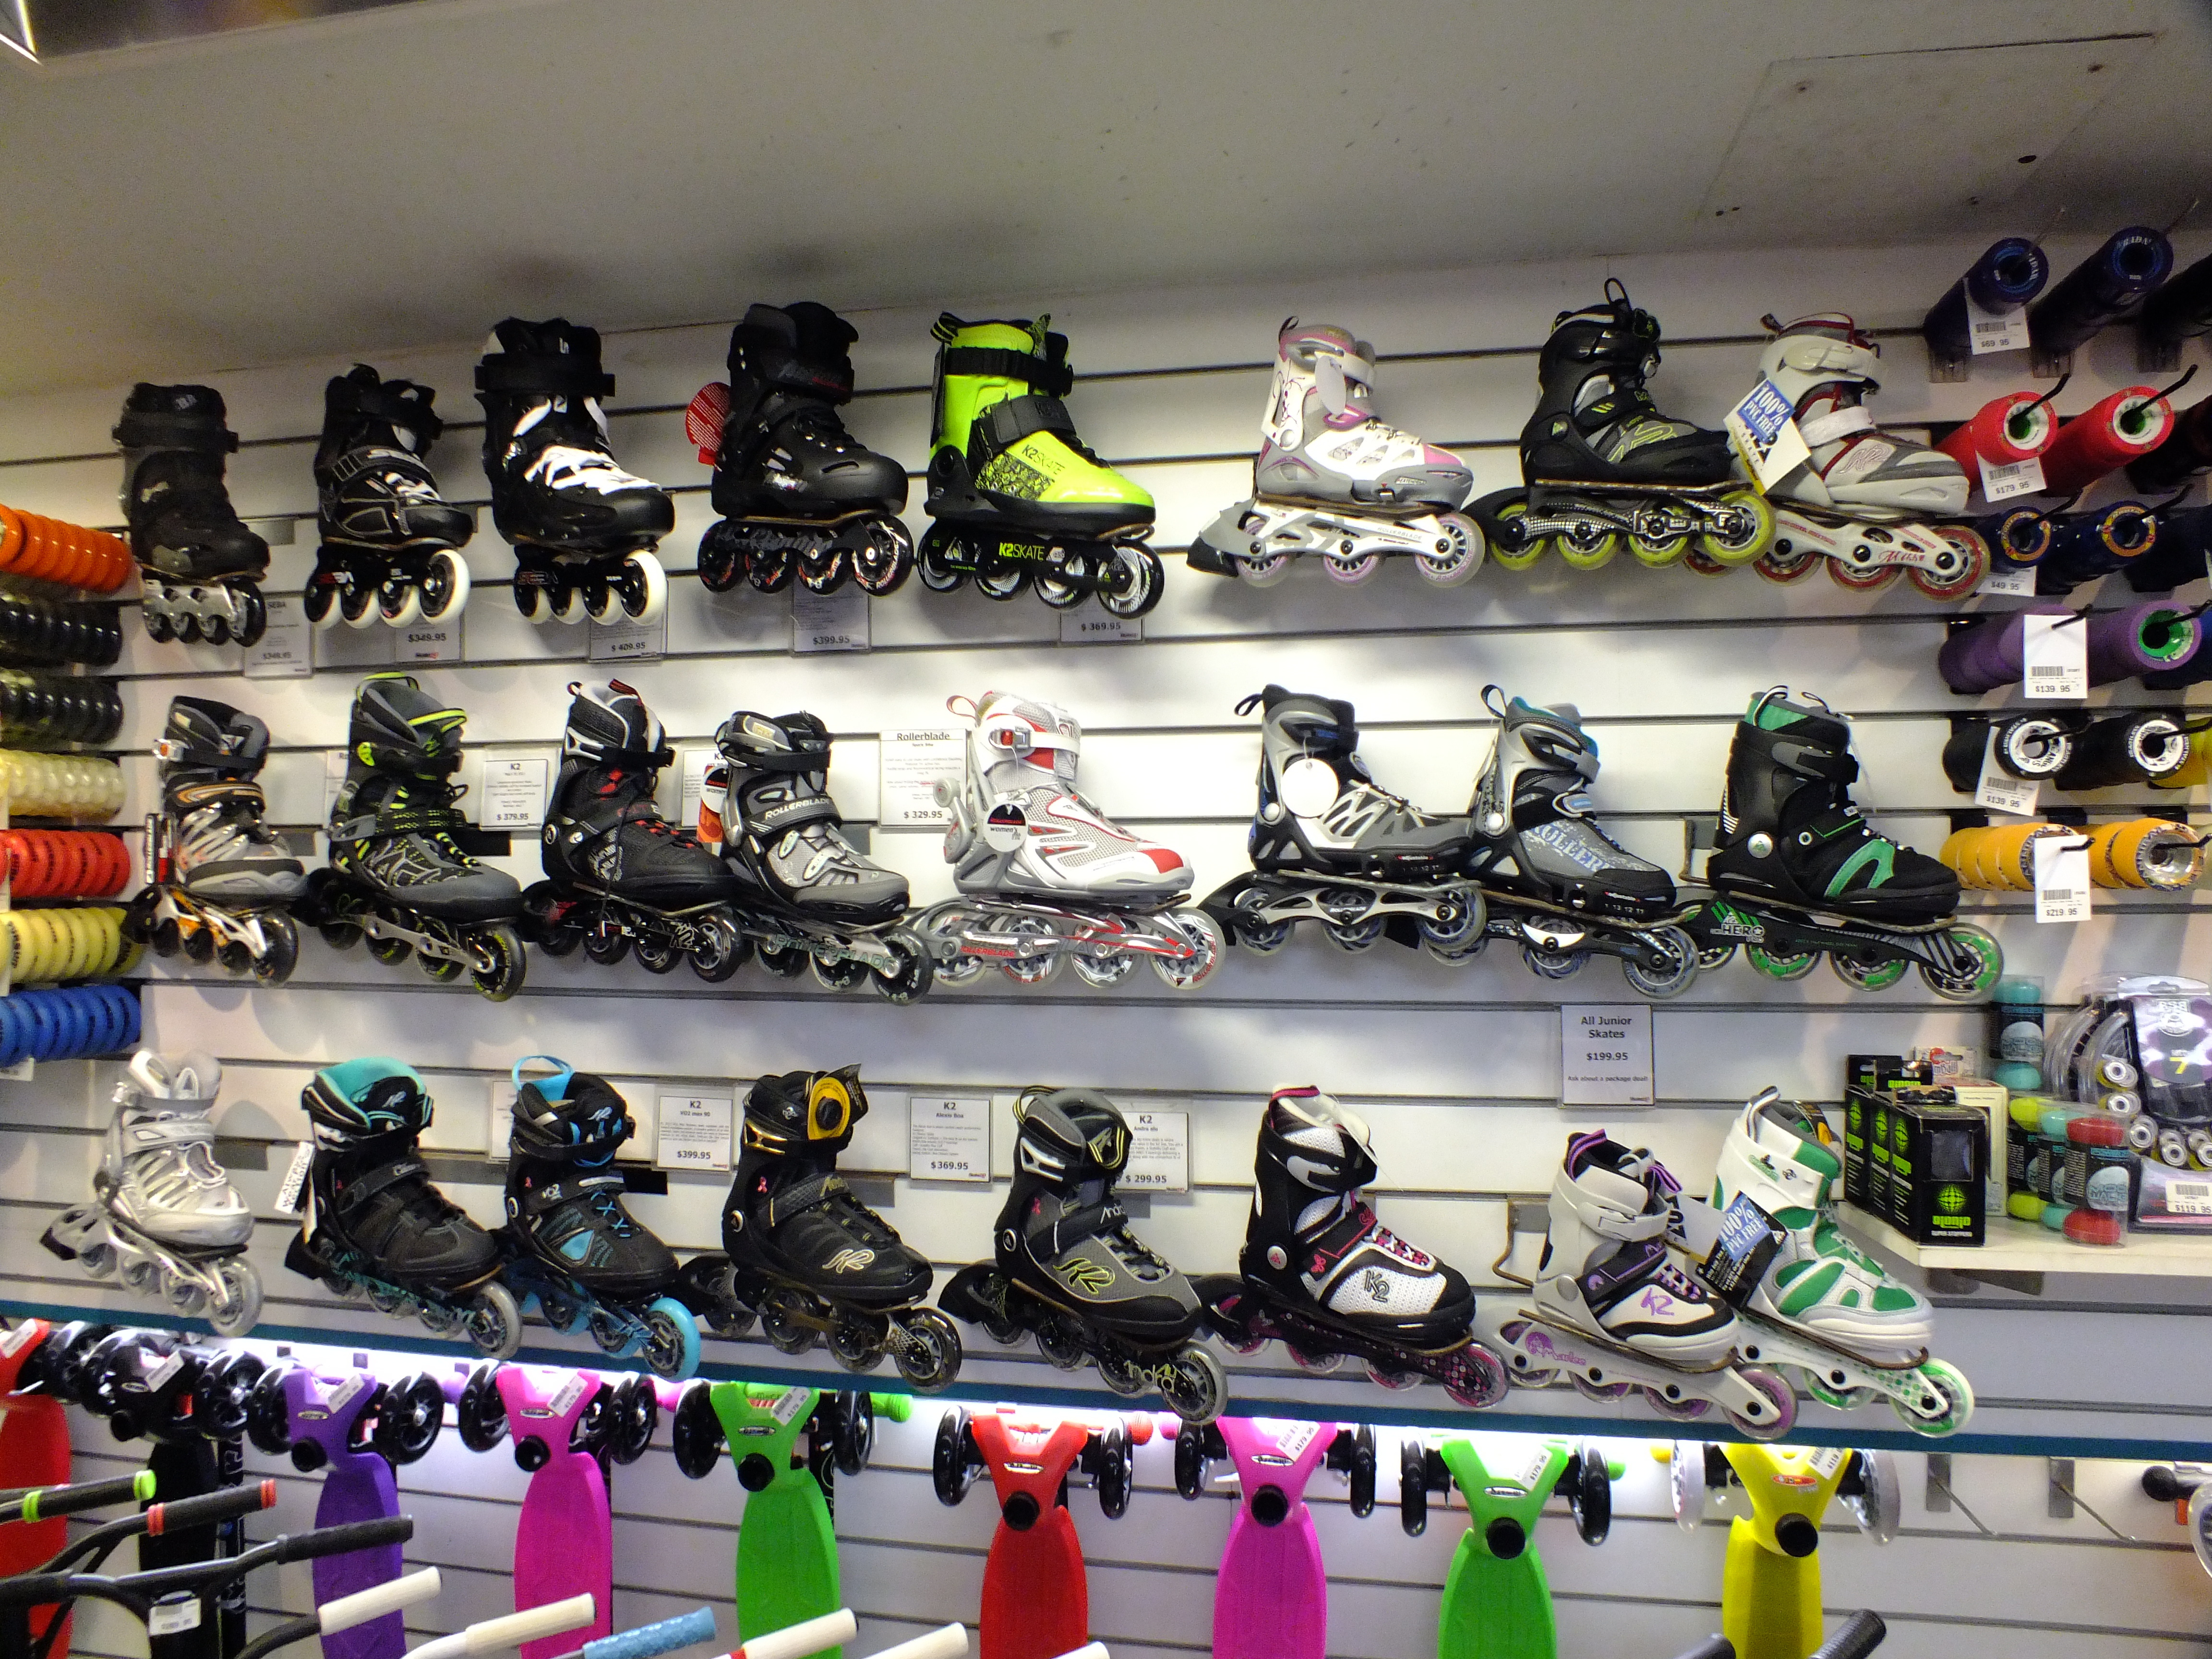 Roller skates for sale dubai - Roller Blades Hire In Sydney Fun Activities In Manly Fun In Sydney Roller